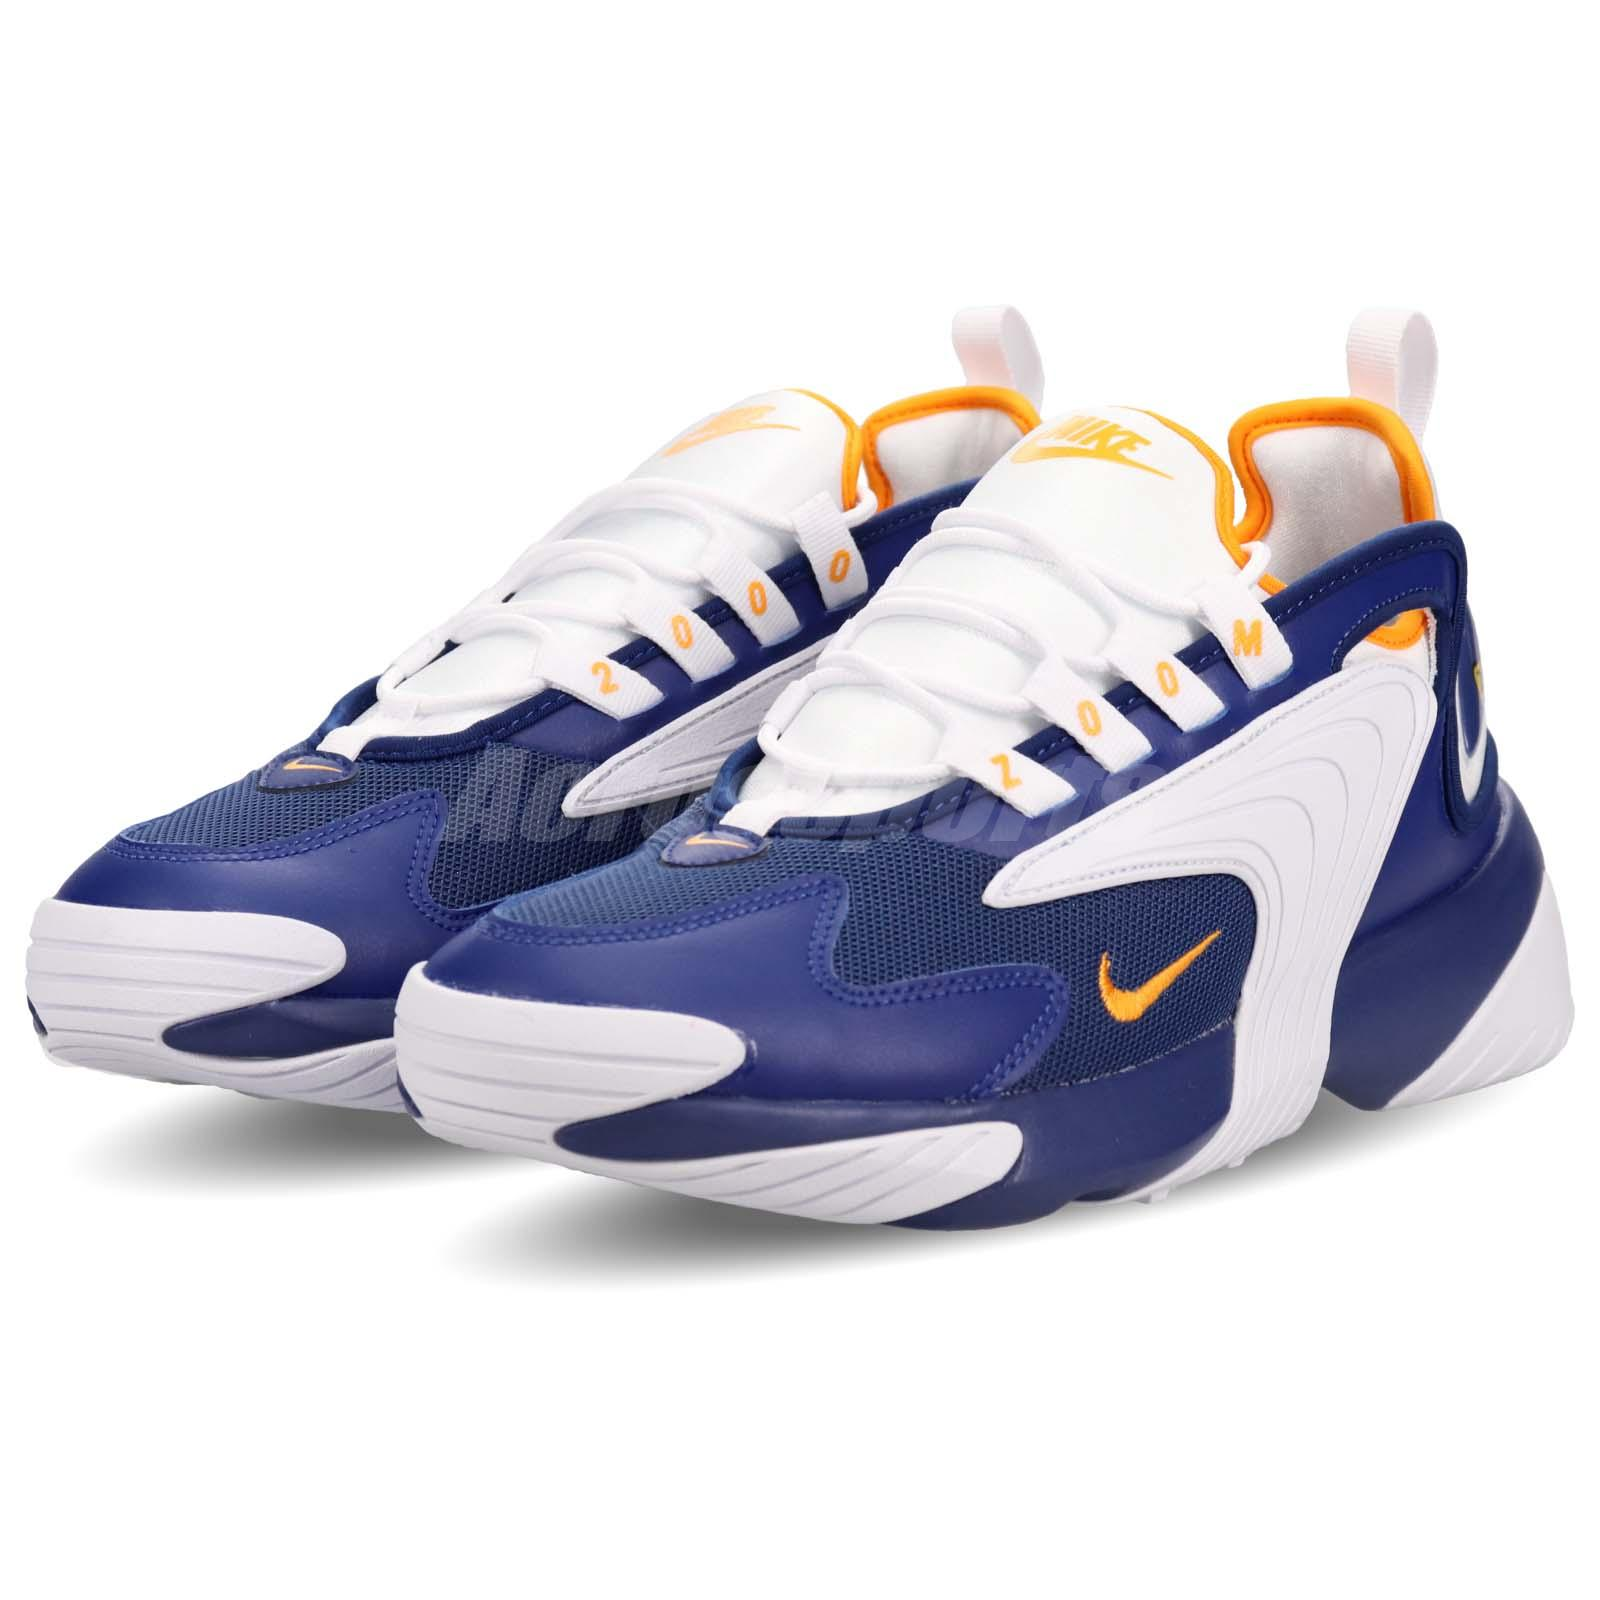 42ced19dacbd Details about Nike Zoom 2K Blue Orange White Mens Running Shoes Retro  Sneakers AO0269-400